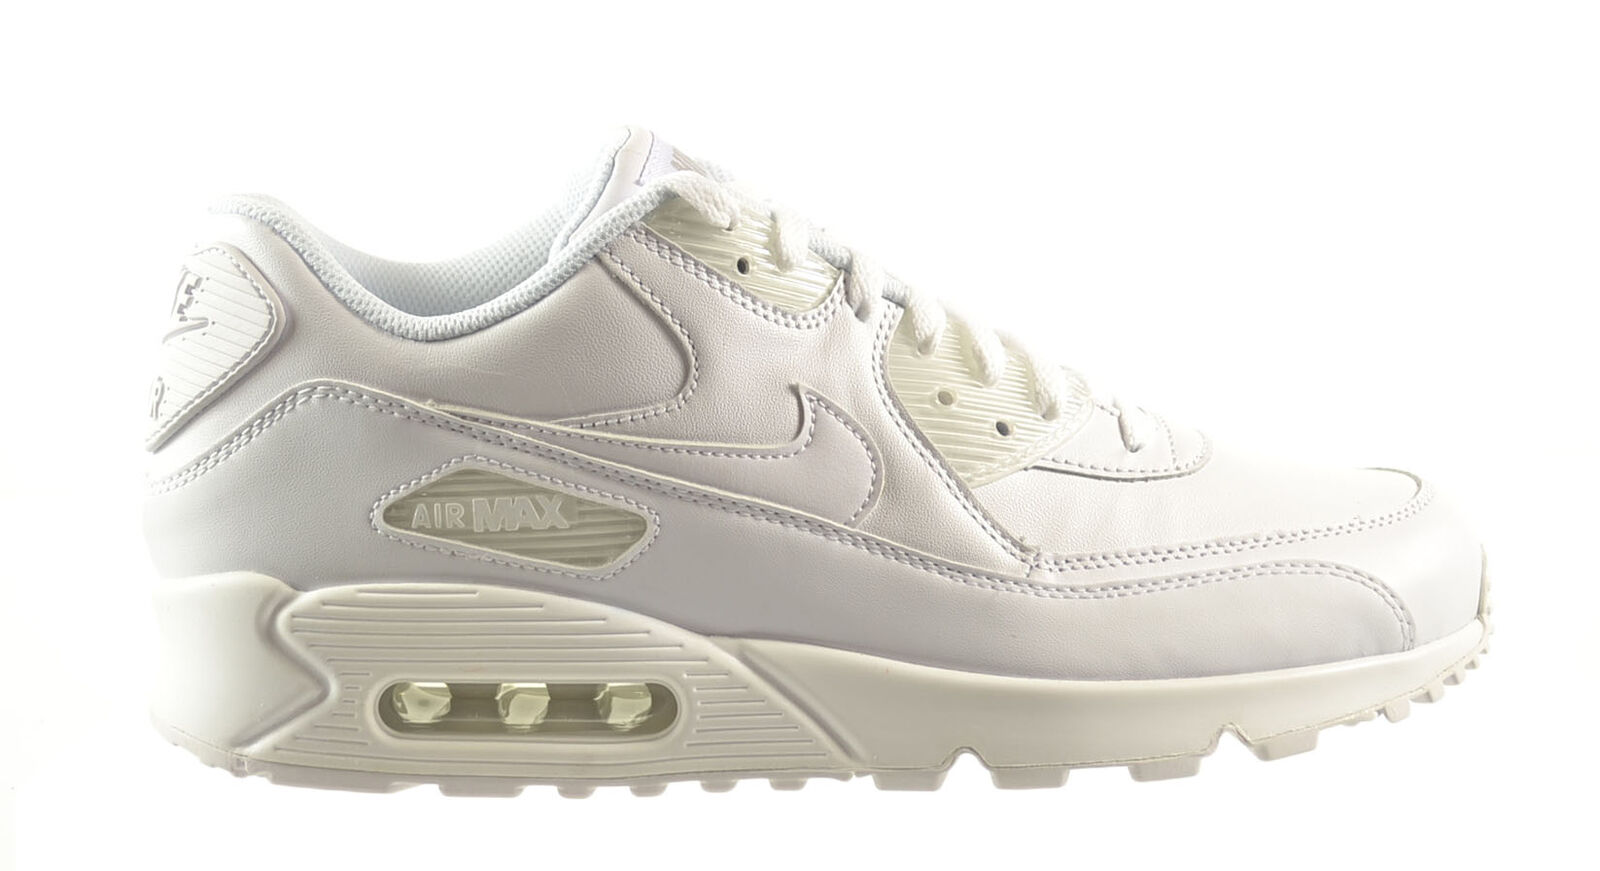 Nike Air Max 90 Leather Men's Shoes White/White 302519-113